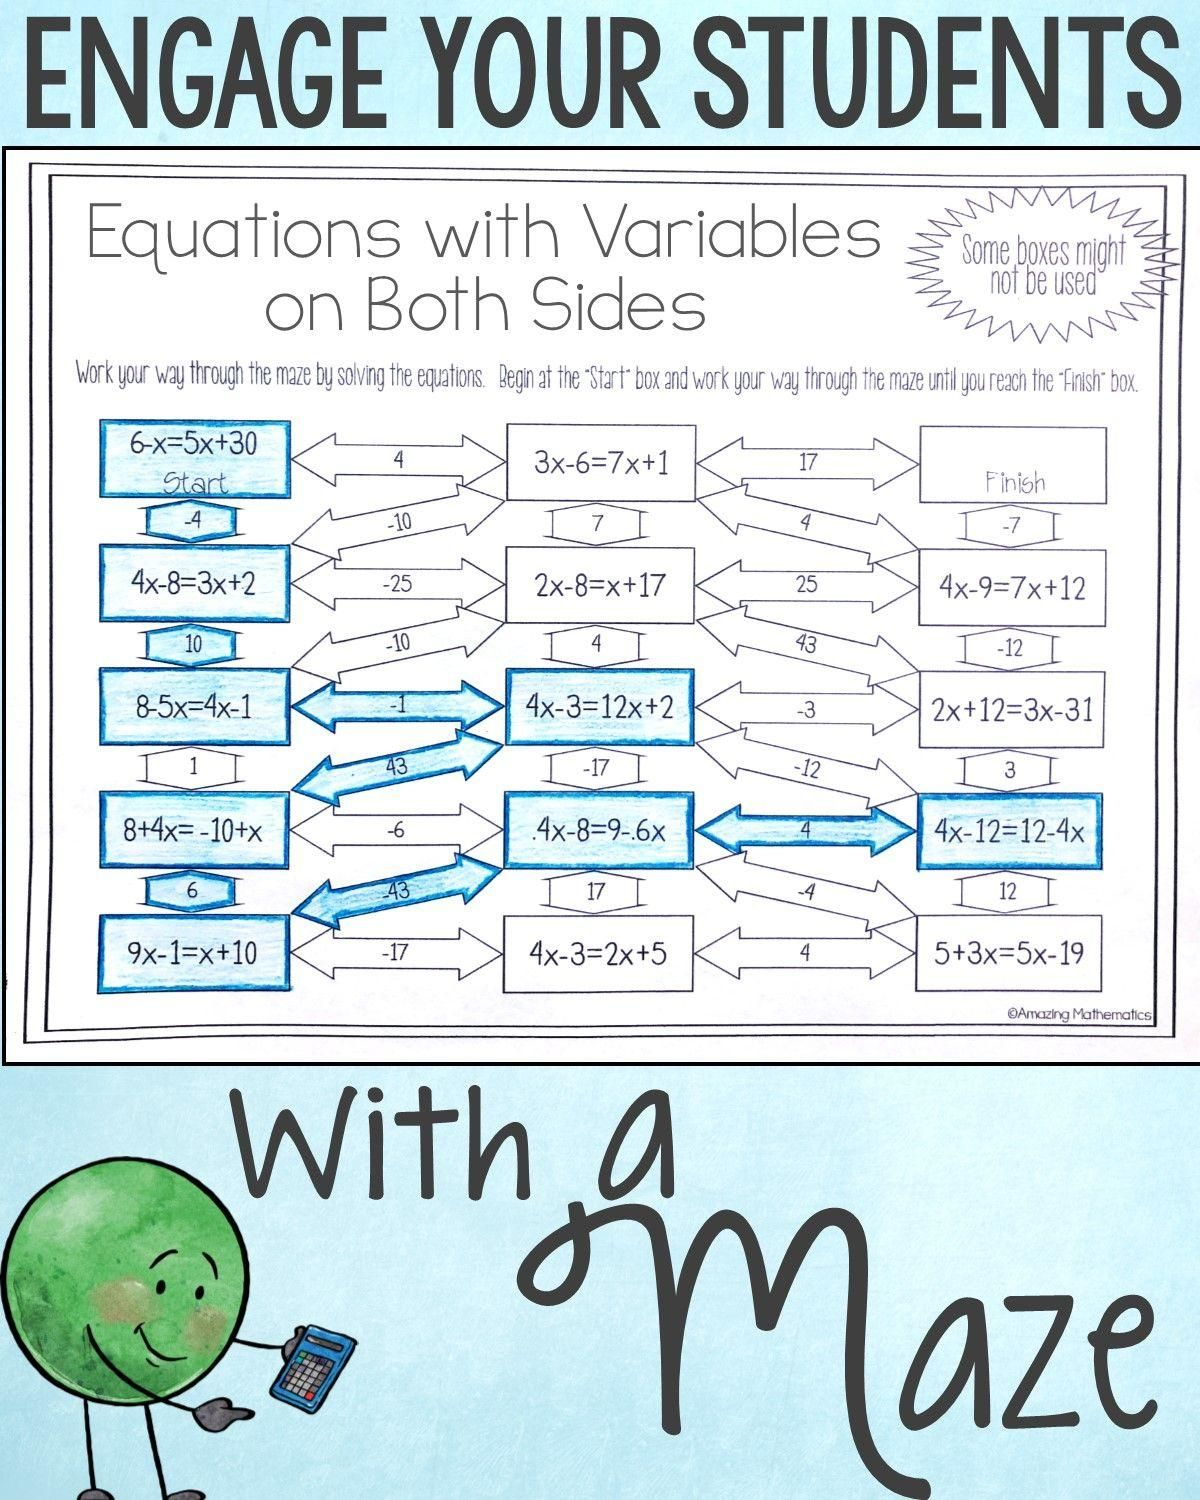 38 Math Worksheets Equations With Variables On Both Sides